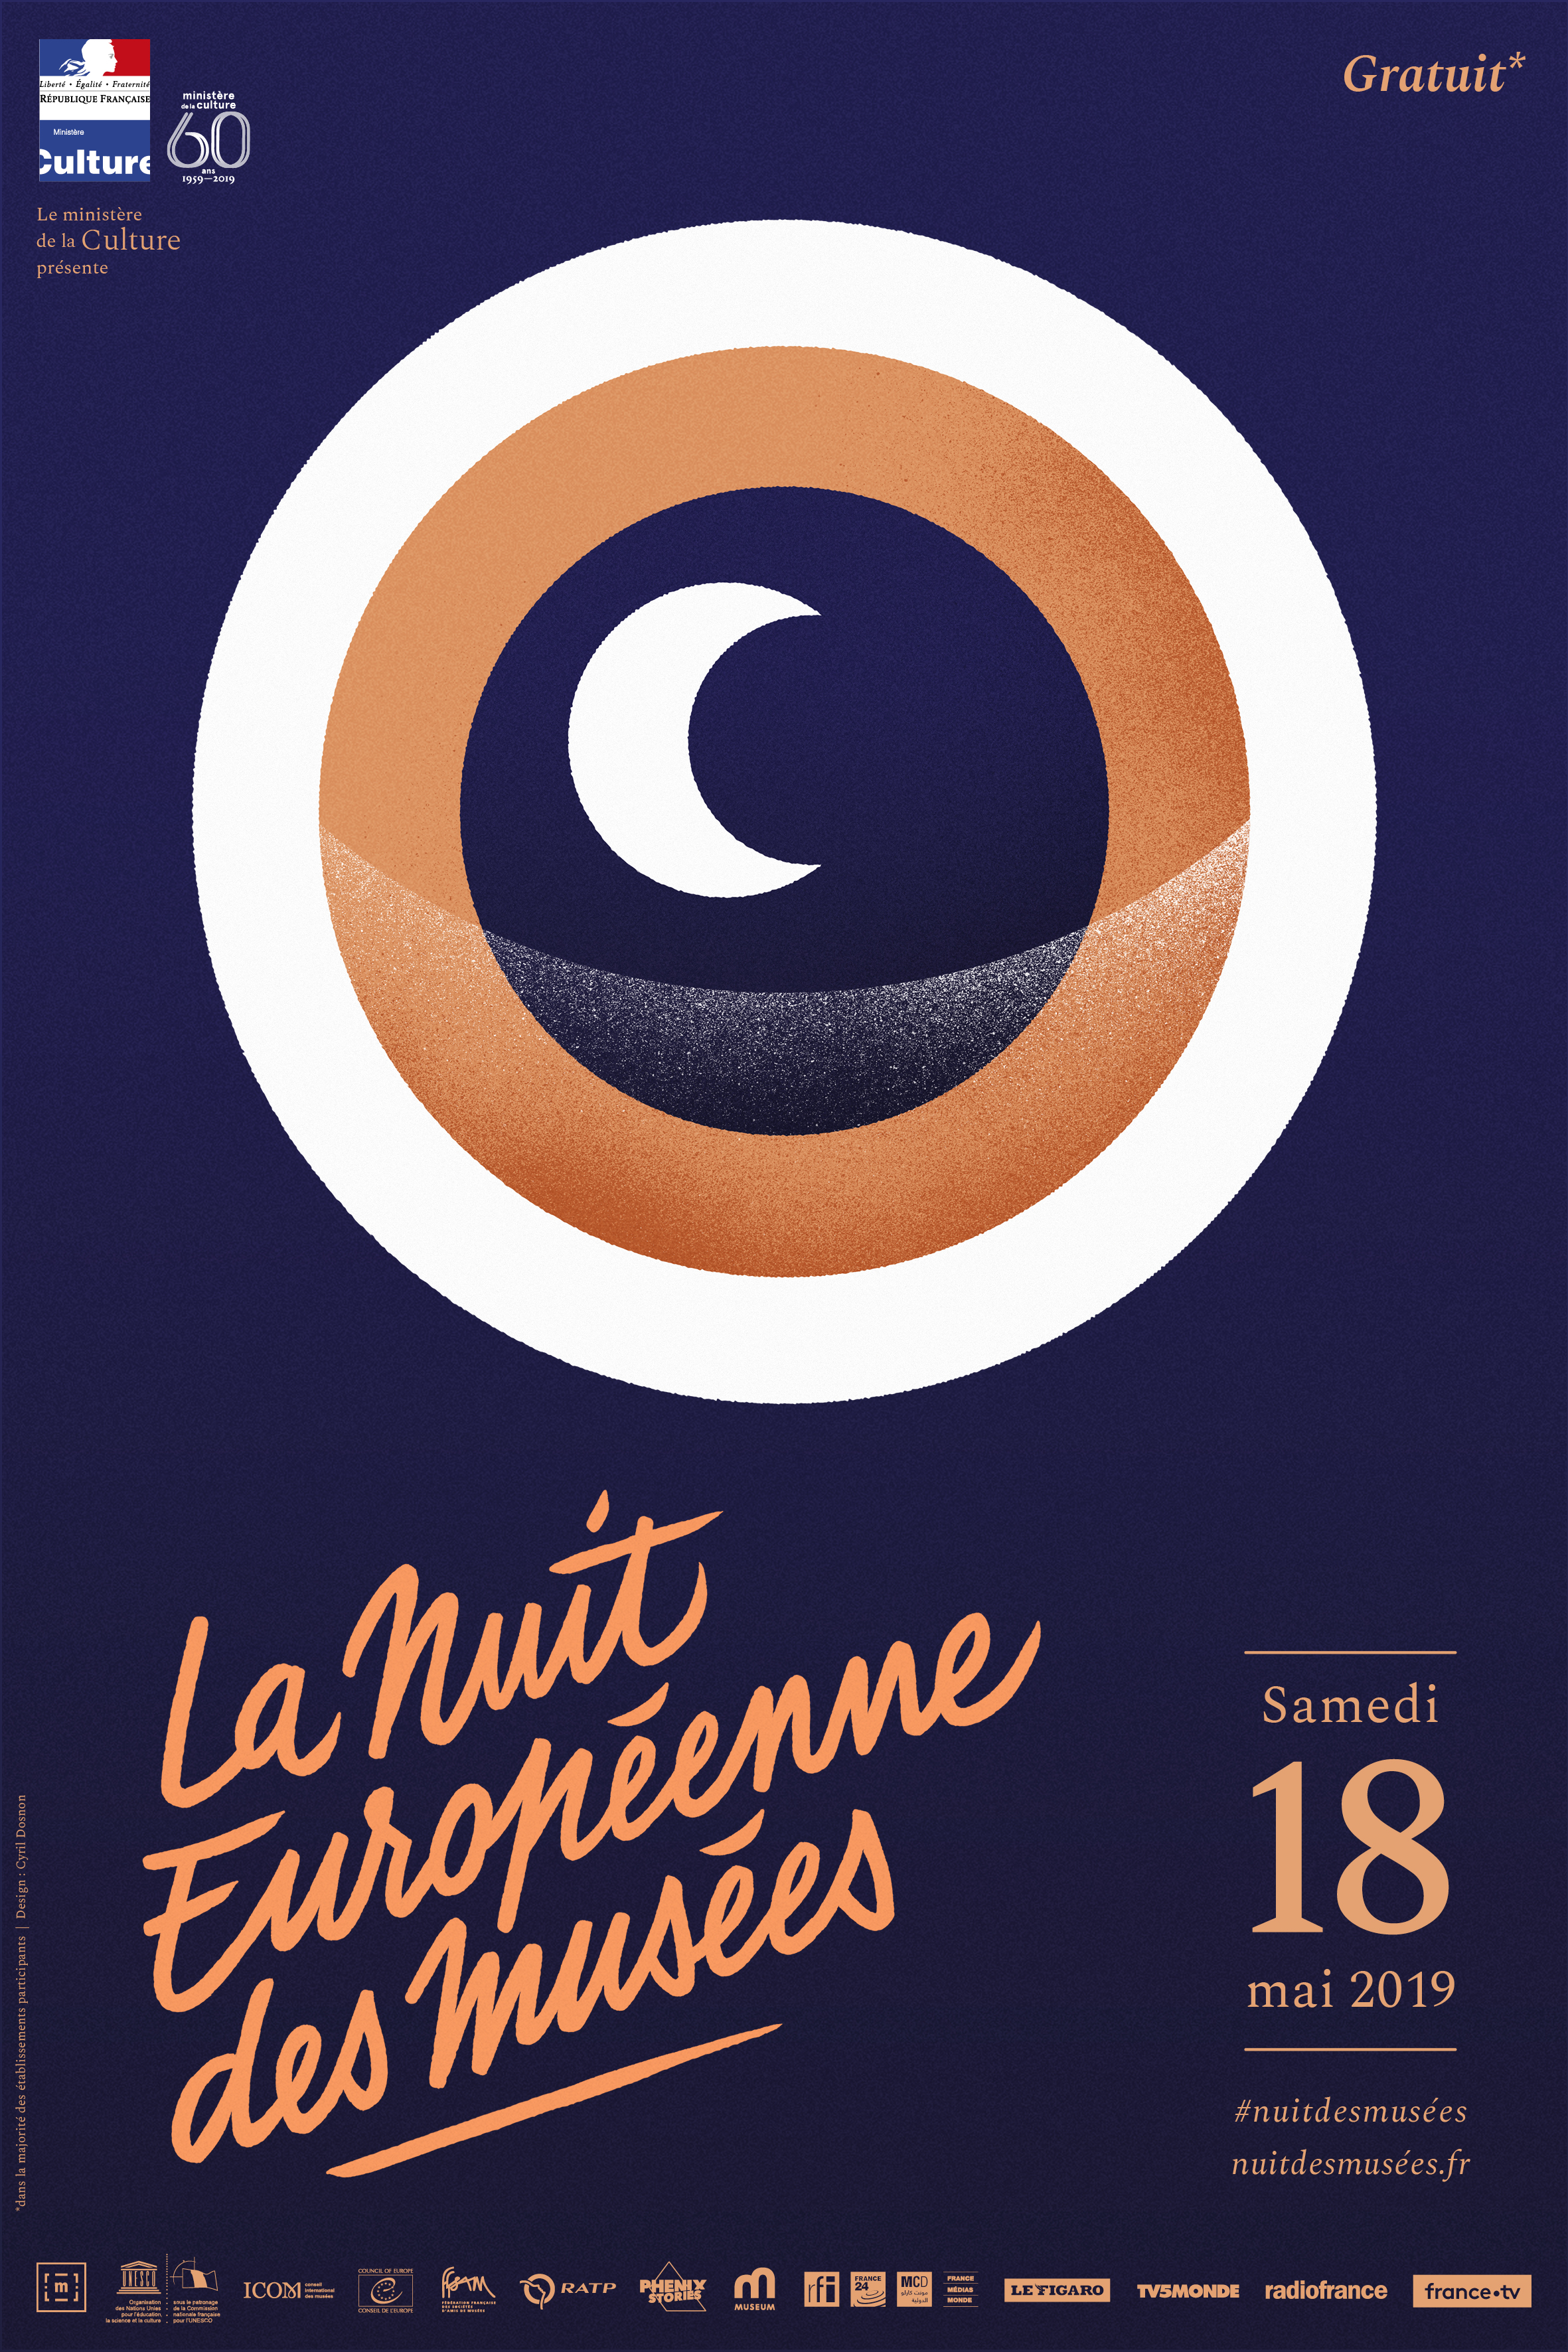 Affiche-Nuit-europeenne-des-musees-2019